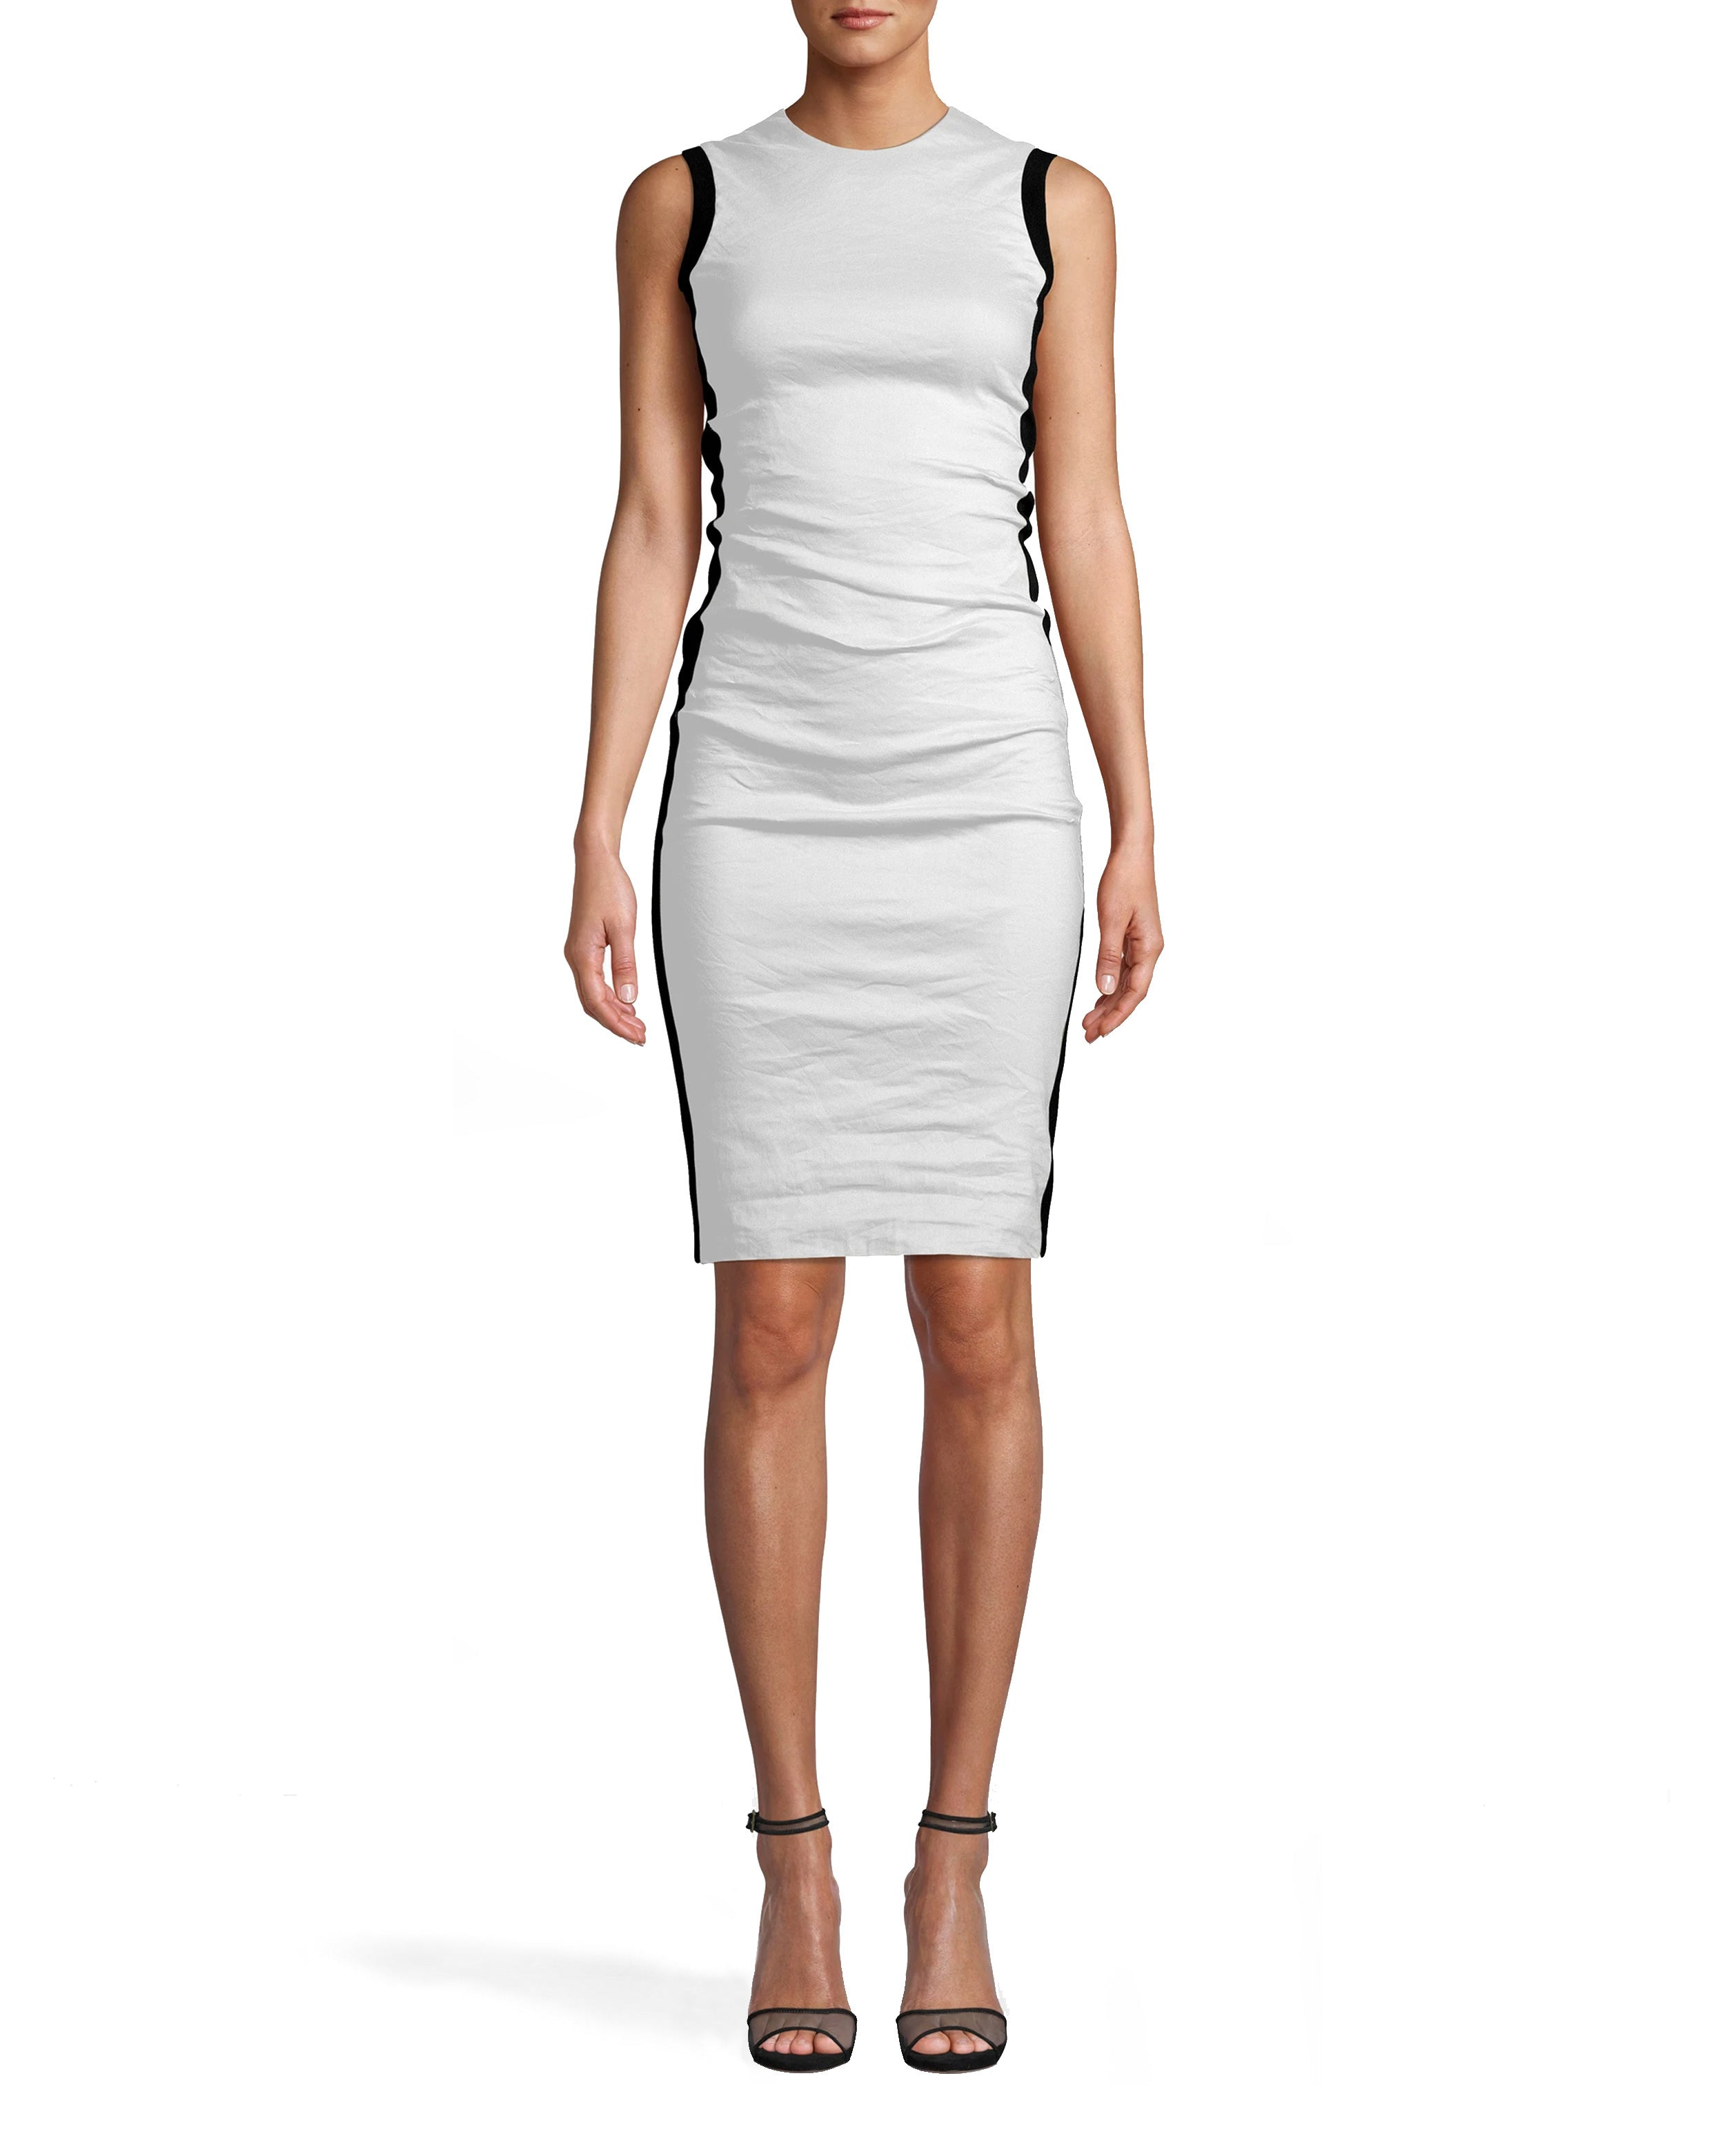 nicole miller cotton metal and ponte combo dress in khaki green | polyester/spandex/elastane | size 0